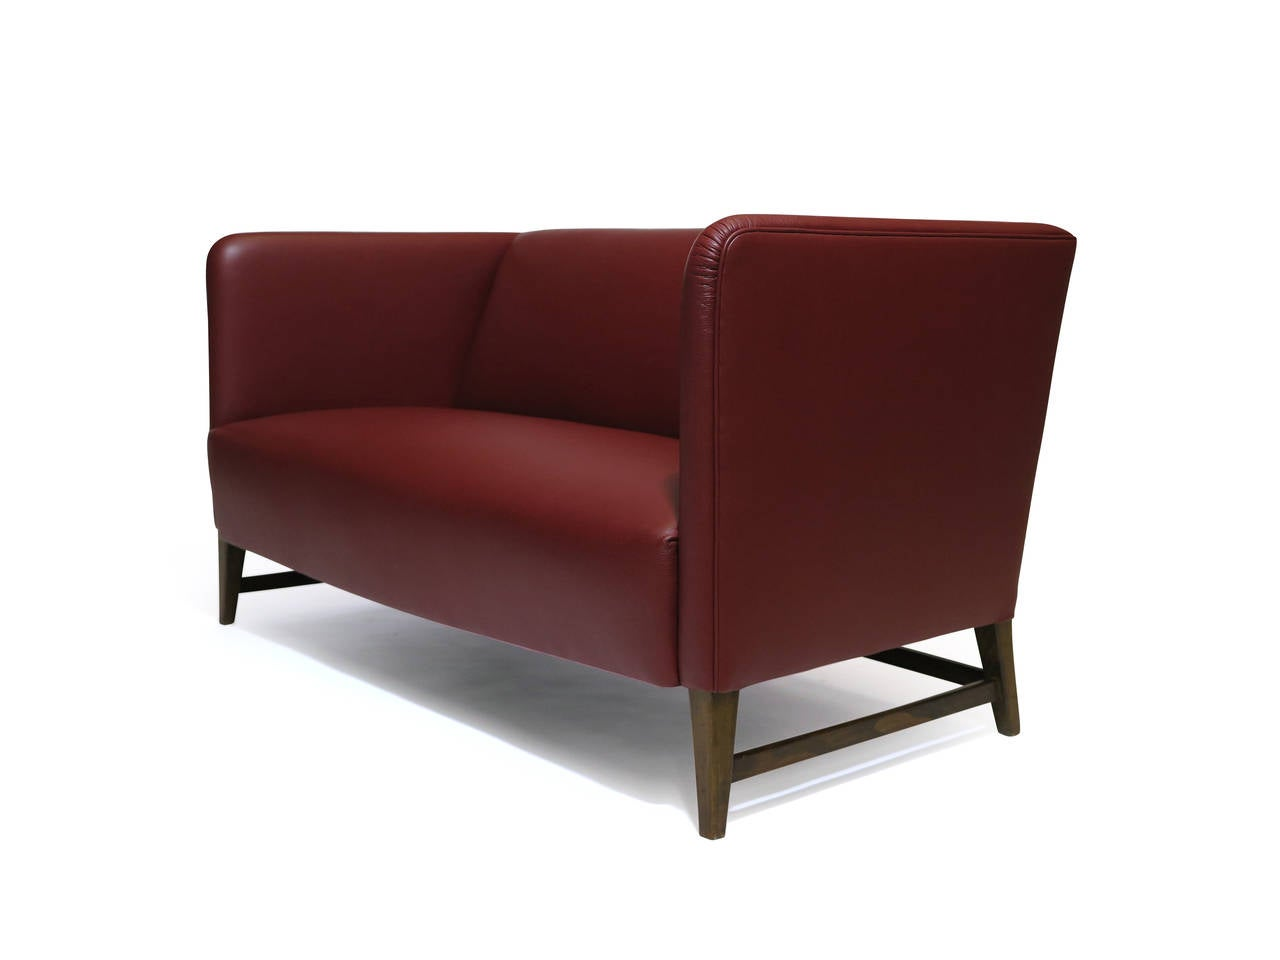 Thorald Madsen Danish Loveseat Sofa In Red Leather At 1stdibs